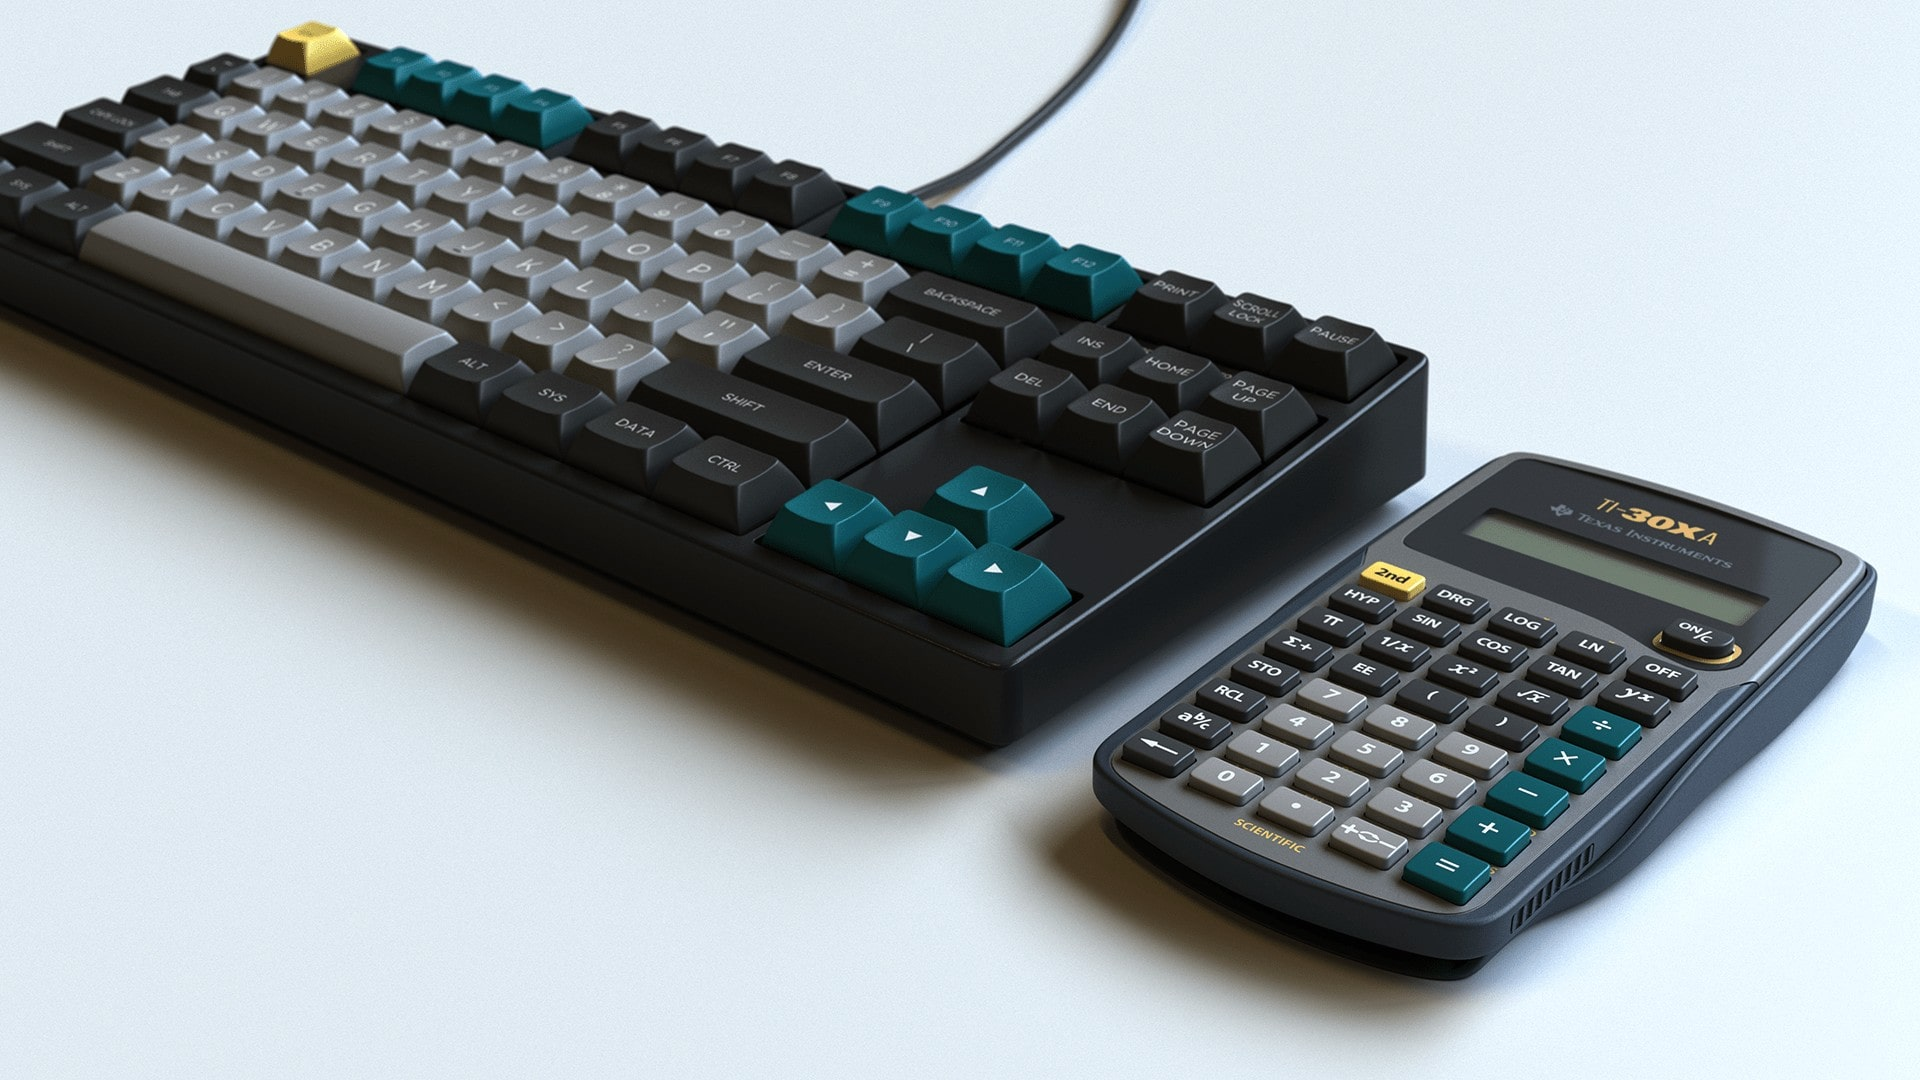 Render of the DSA Scientific